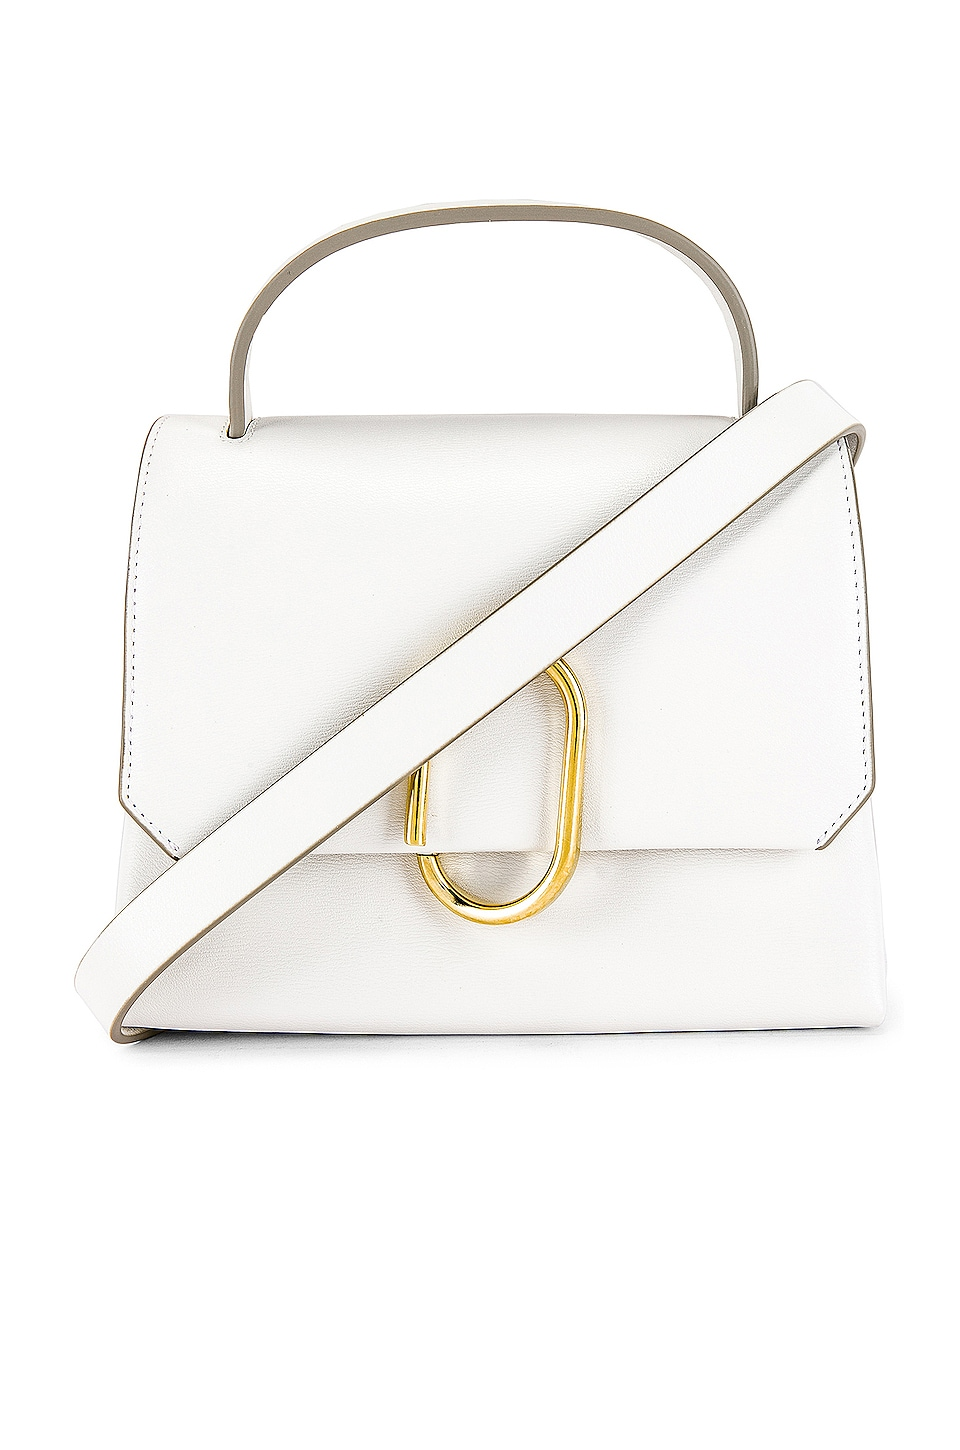 3.1 phillip lim Alix Mini Top Handle Satchel in Antique White